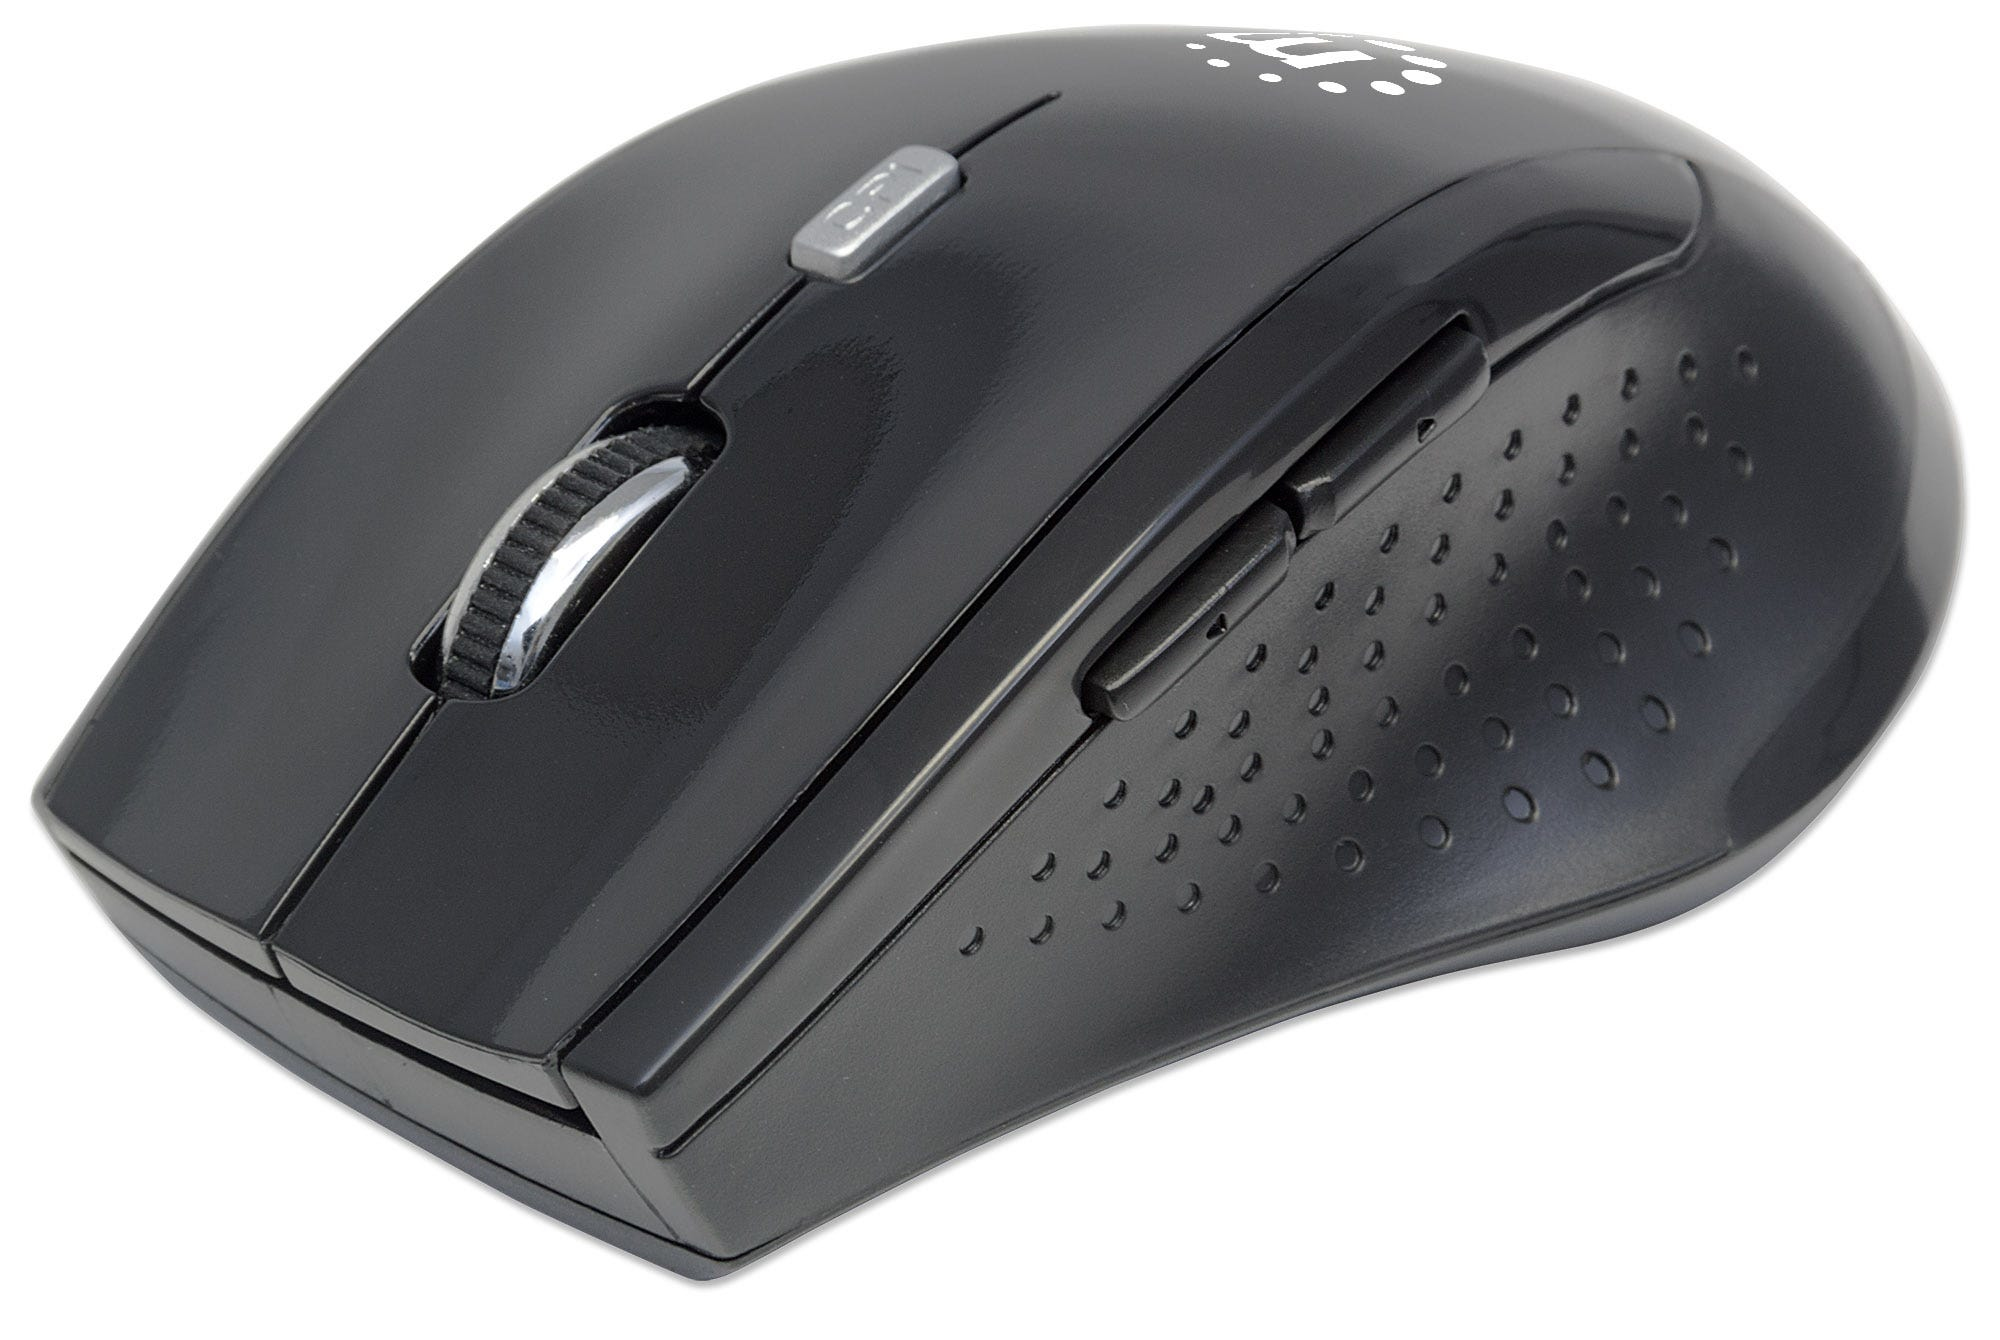 Manhattan Curve Wireless Mouse, Black, Adjustable DPI (800, 1200 or 1600dpi), 2.4Ghz (up to 10m), USB, Optical, Five Button with Scroll Wheel, USB micro receiver, 2x AAA batteries (included), Full size, Low friction base, Blister